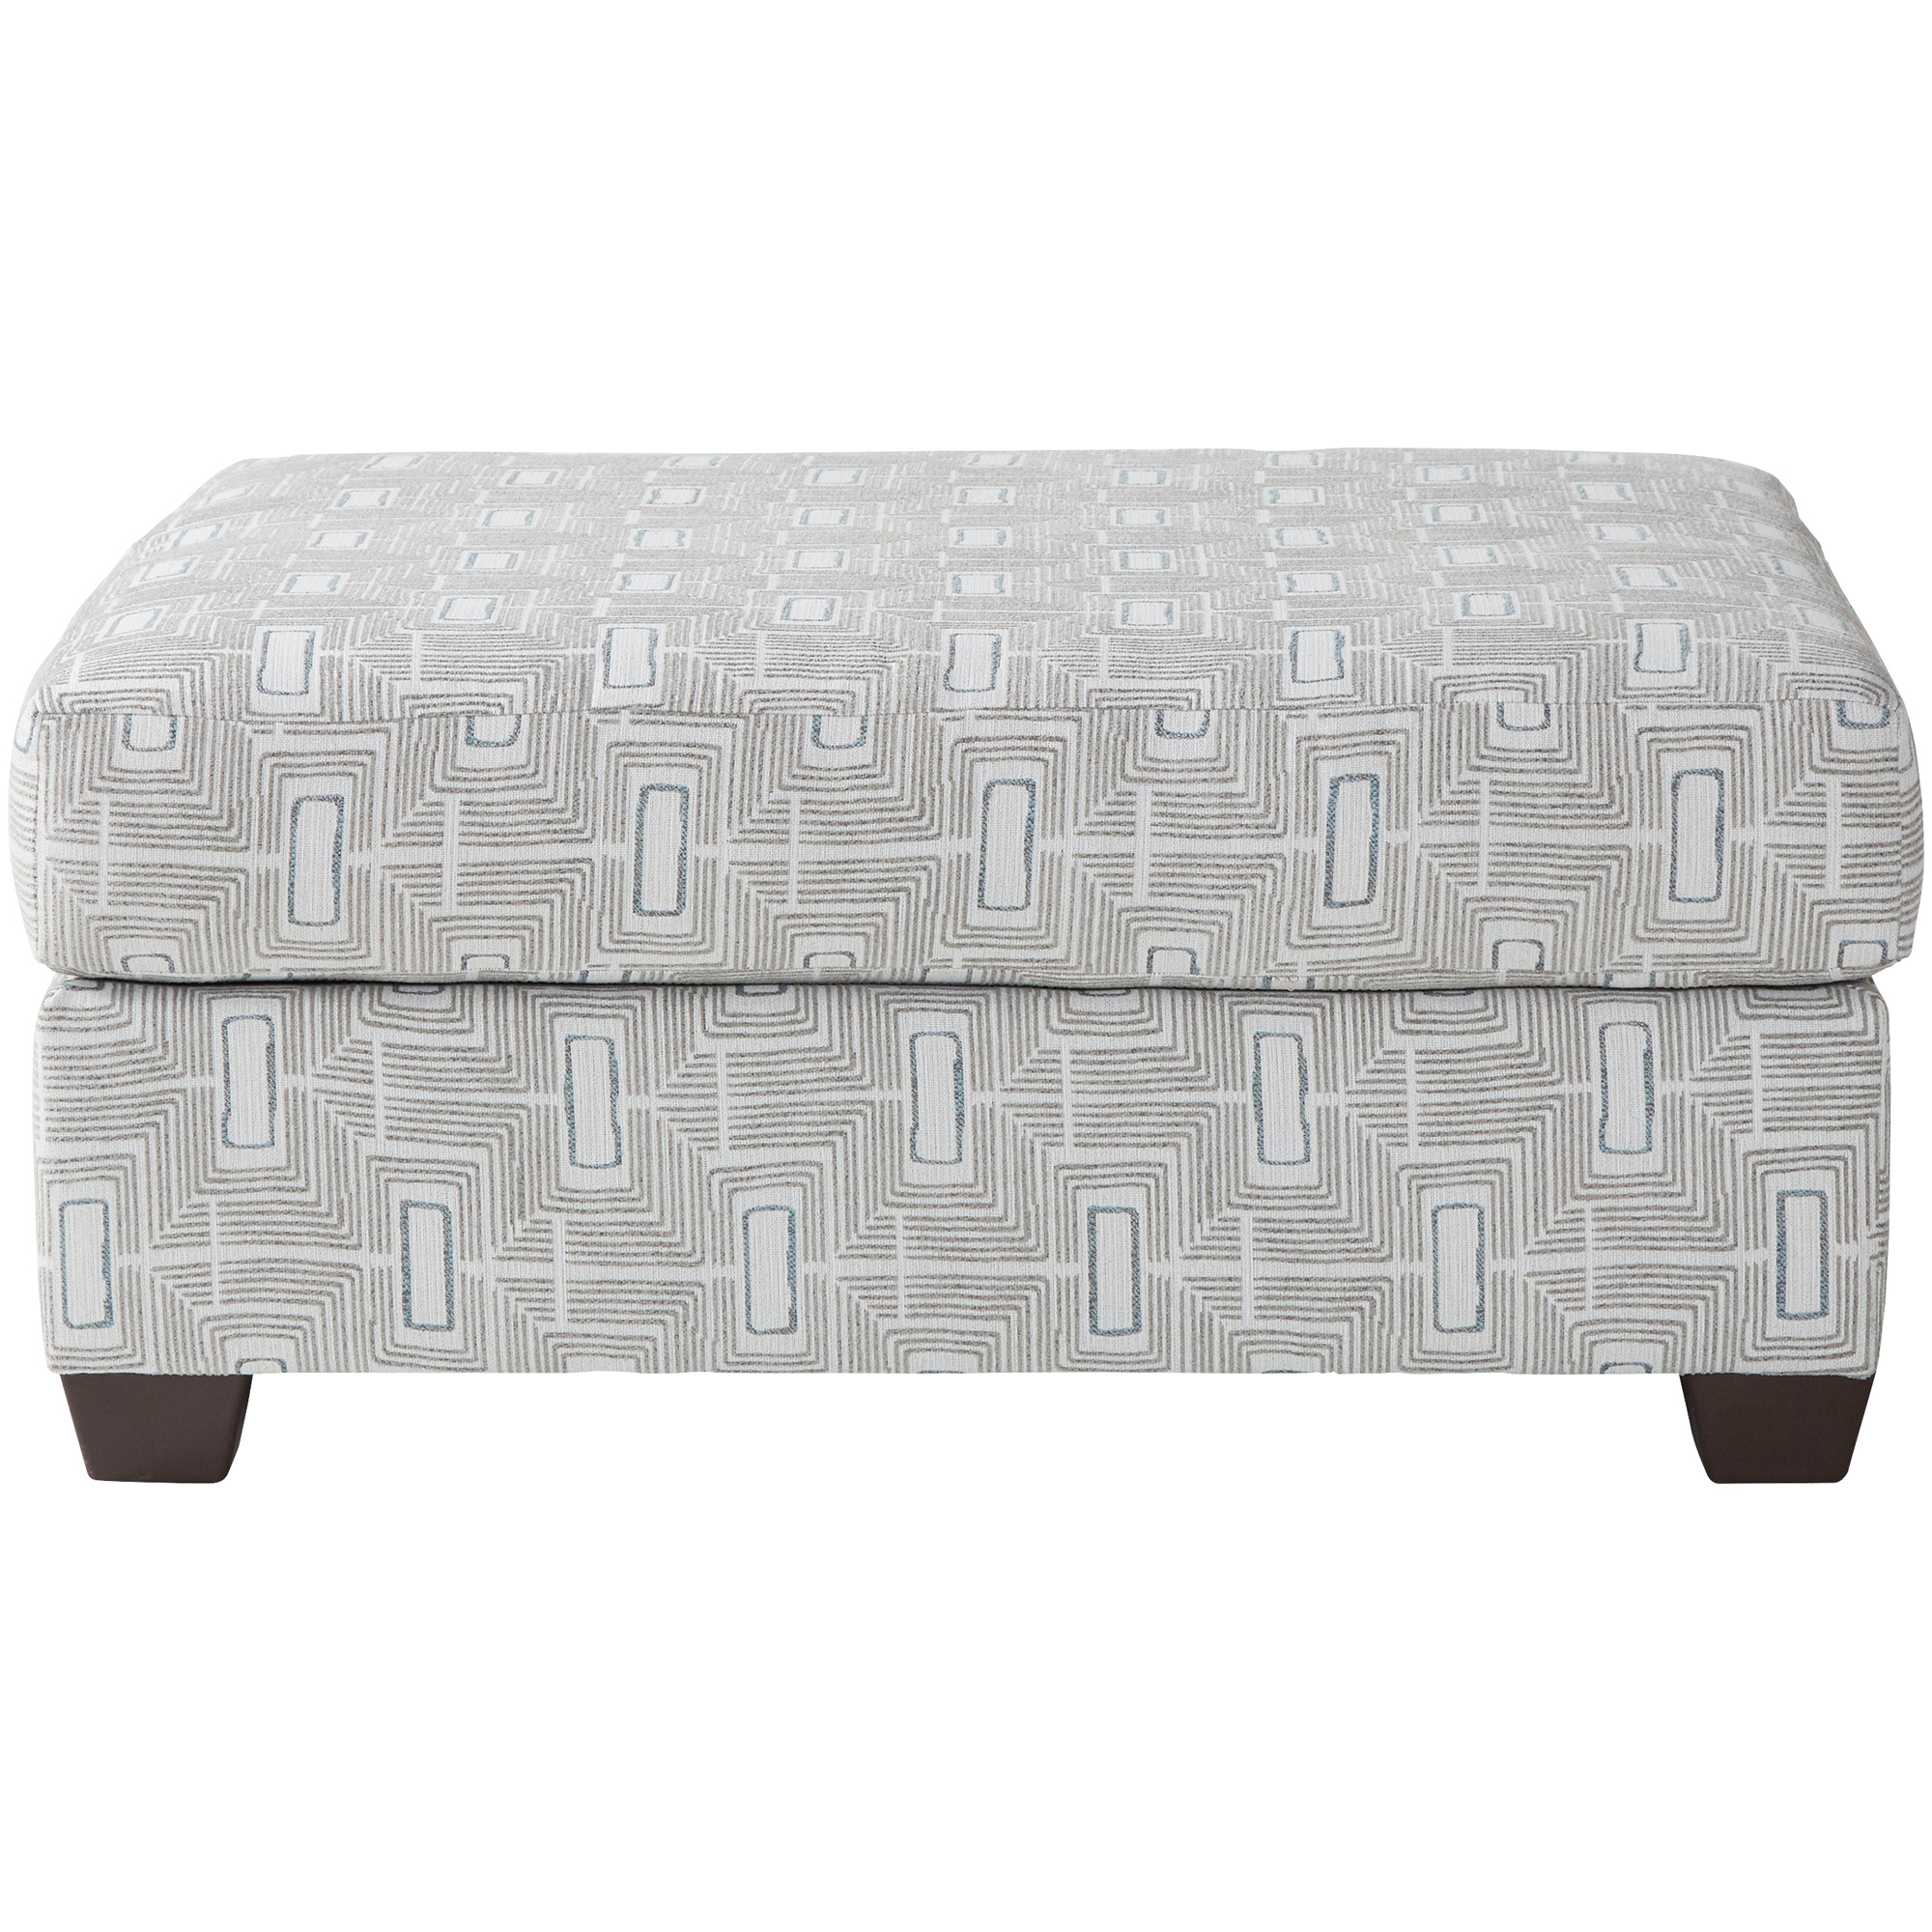 Serta Upholstery By Hughes Furniture | Asta Smoke Accent Ottoman